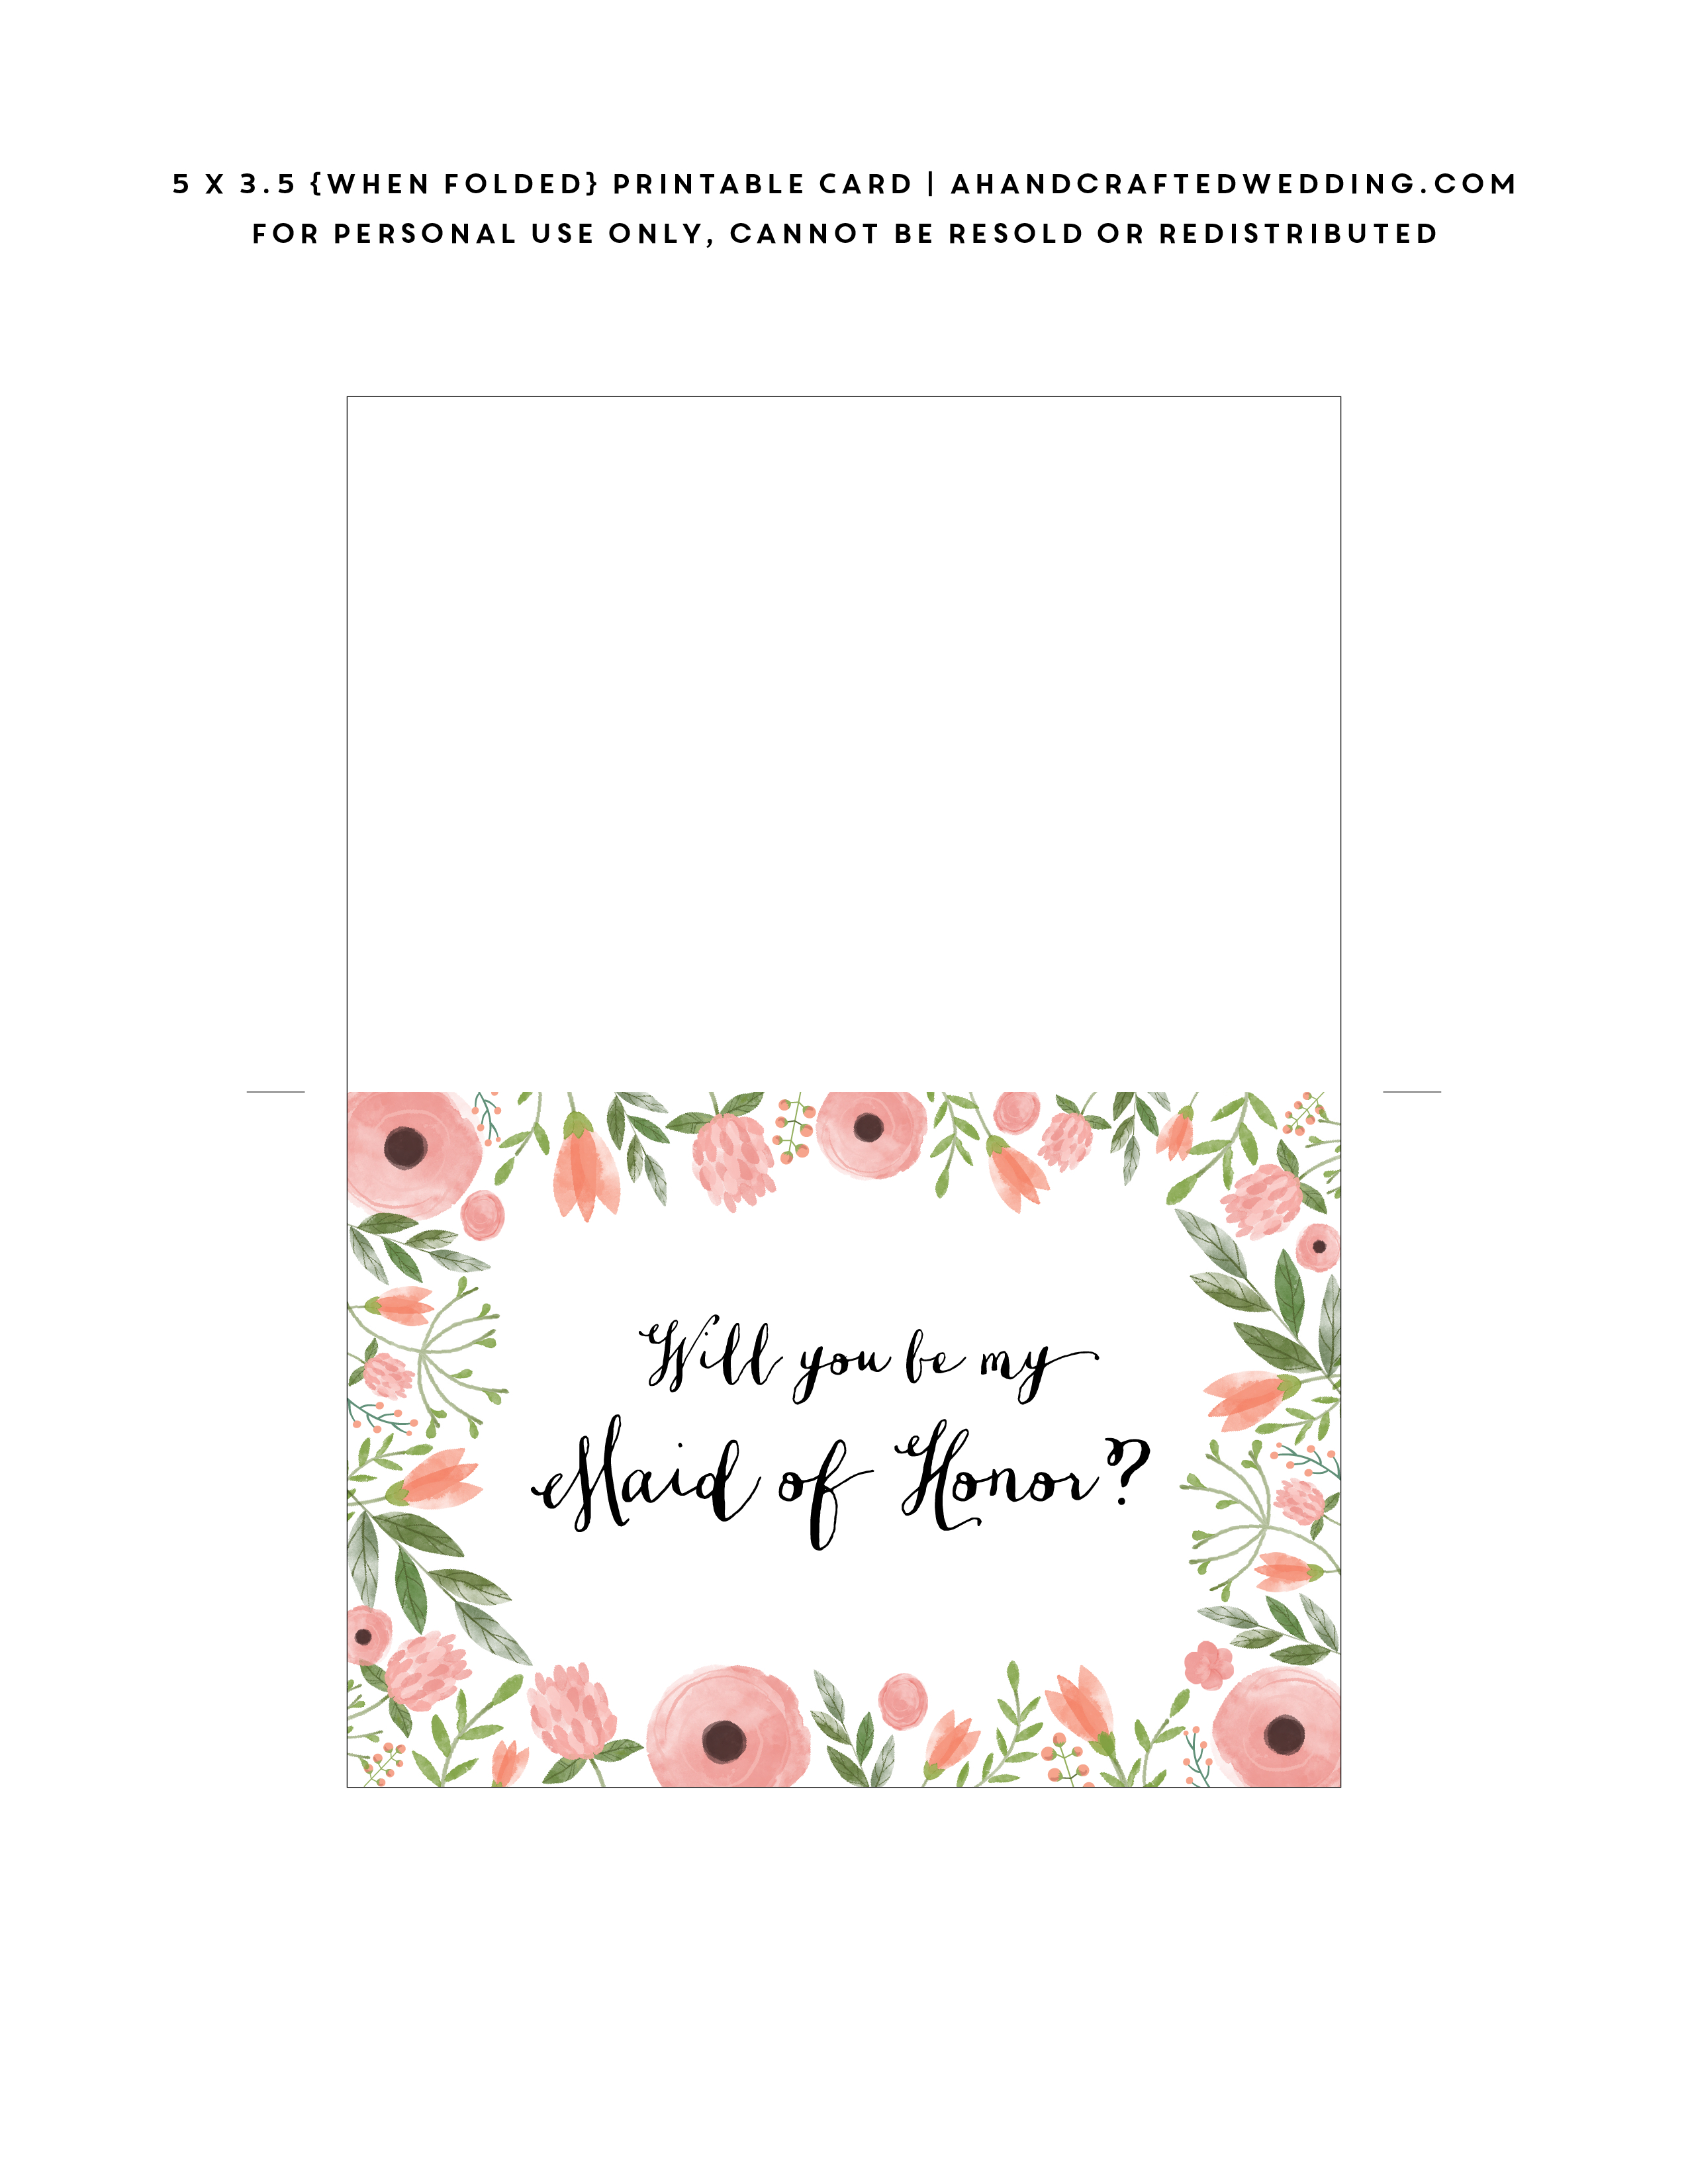 Pincandace Starr On Bridal Party | Bridesmaid Cards, Be My - Free Printable Will You Be My Maid Of Honor Card